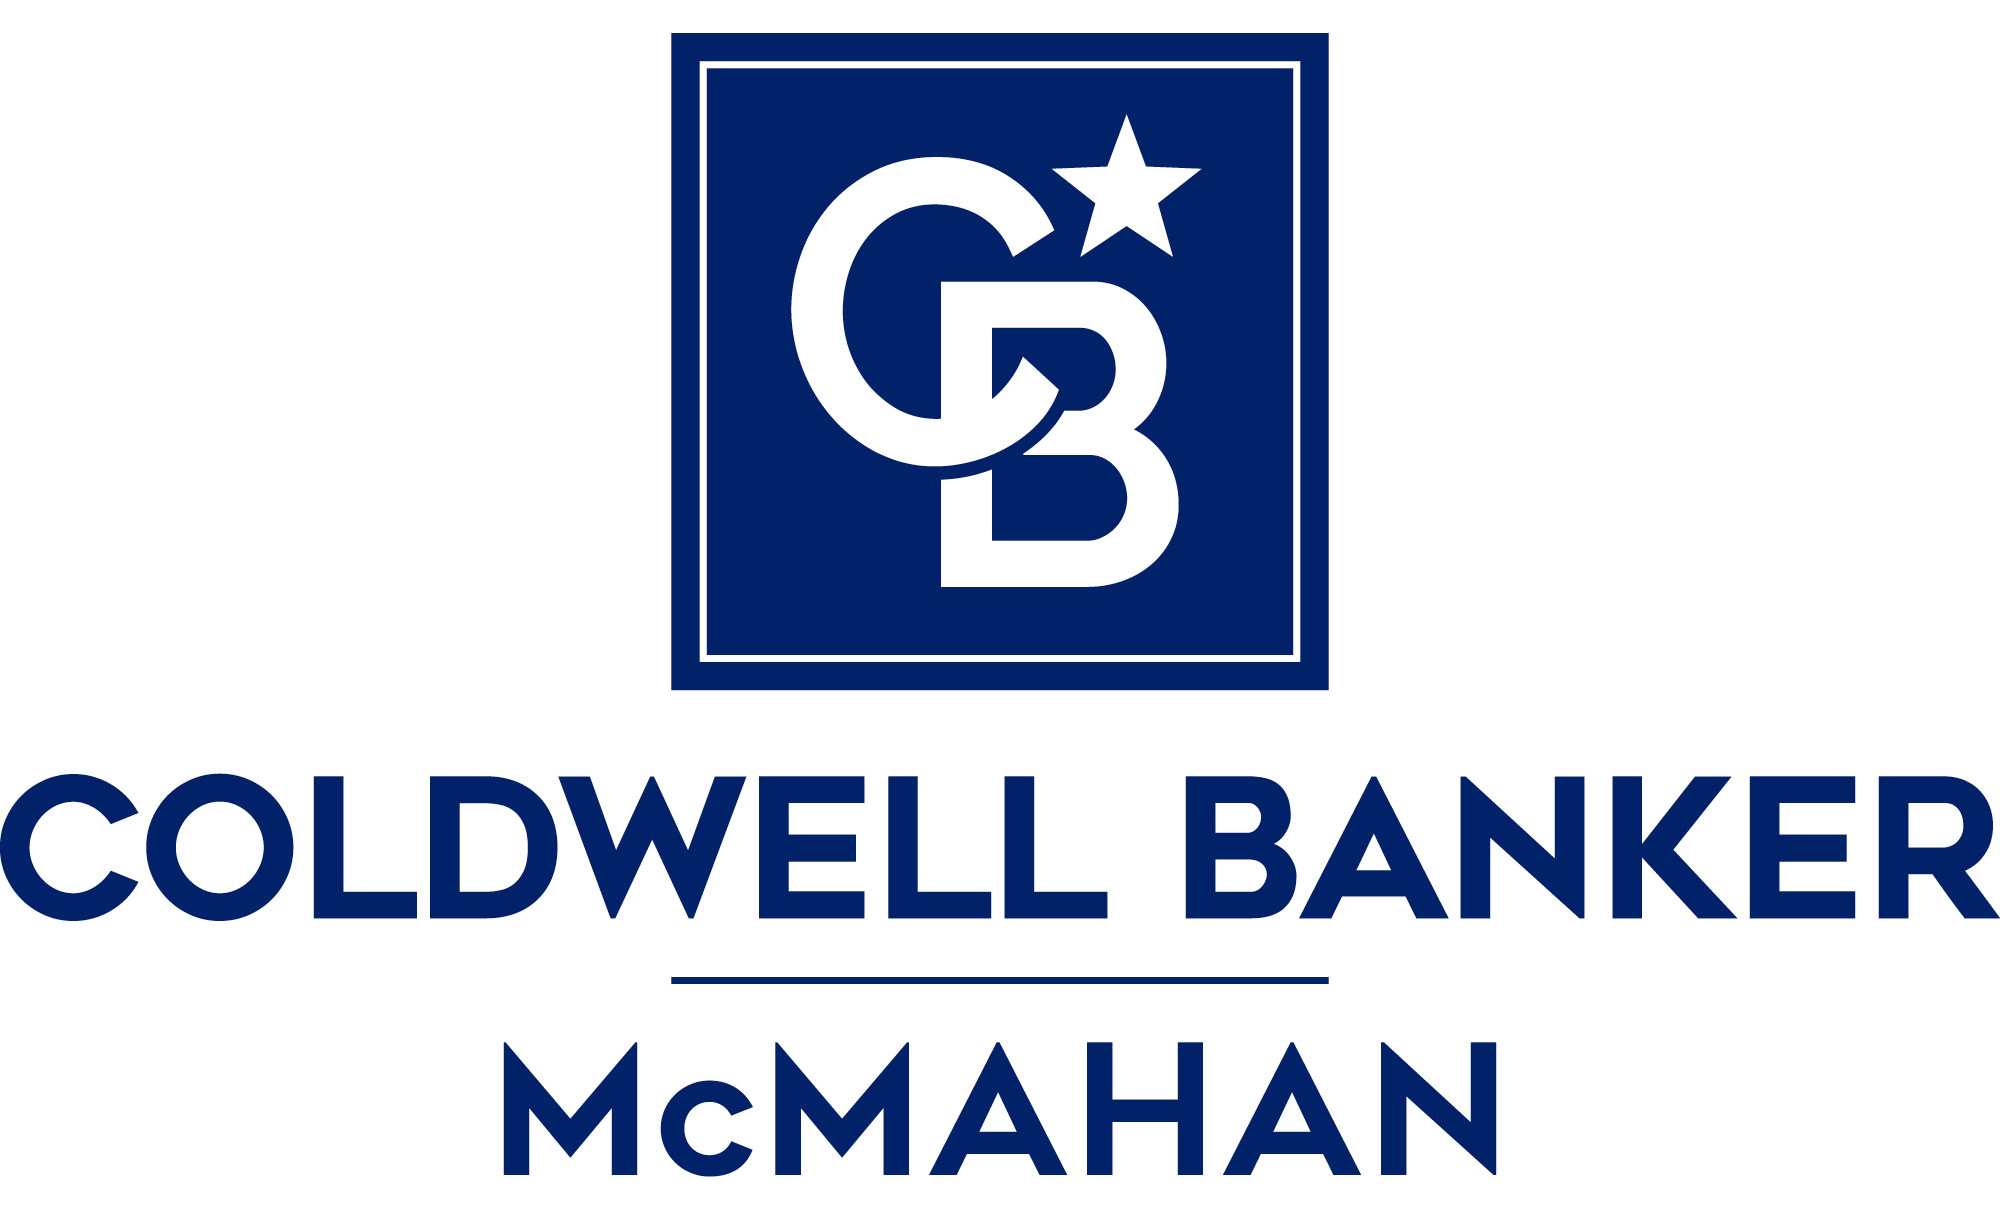 Candy Kenney - Coldwell Banker McMahan Logo